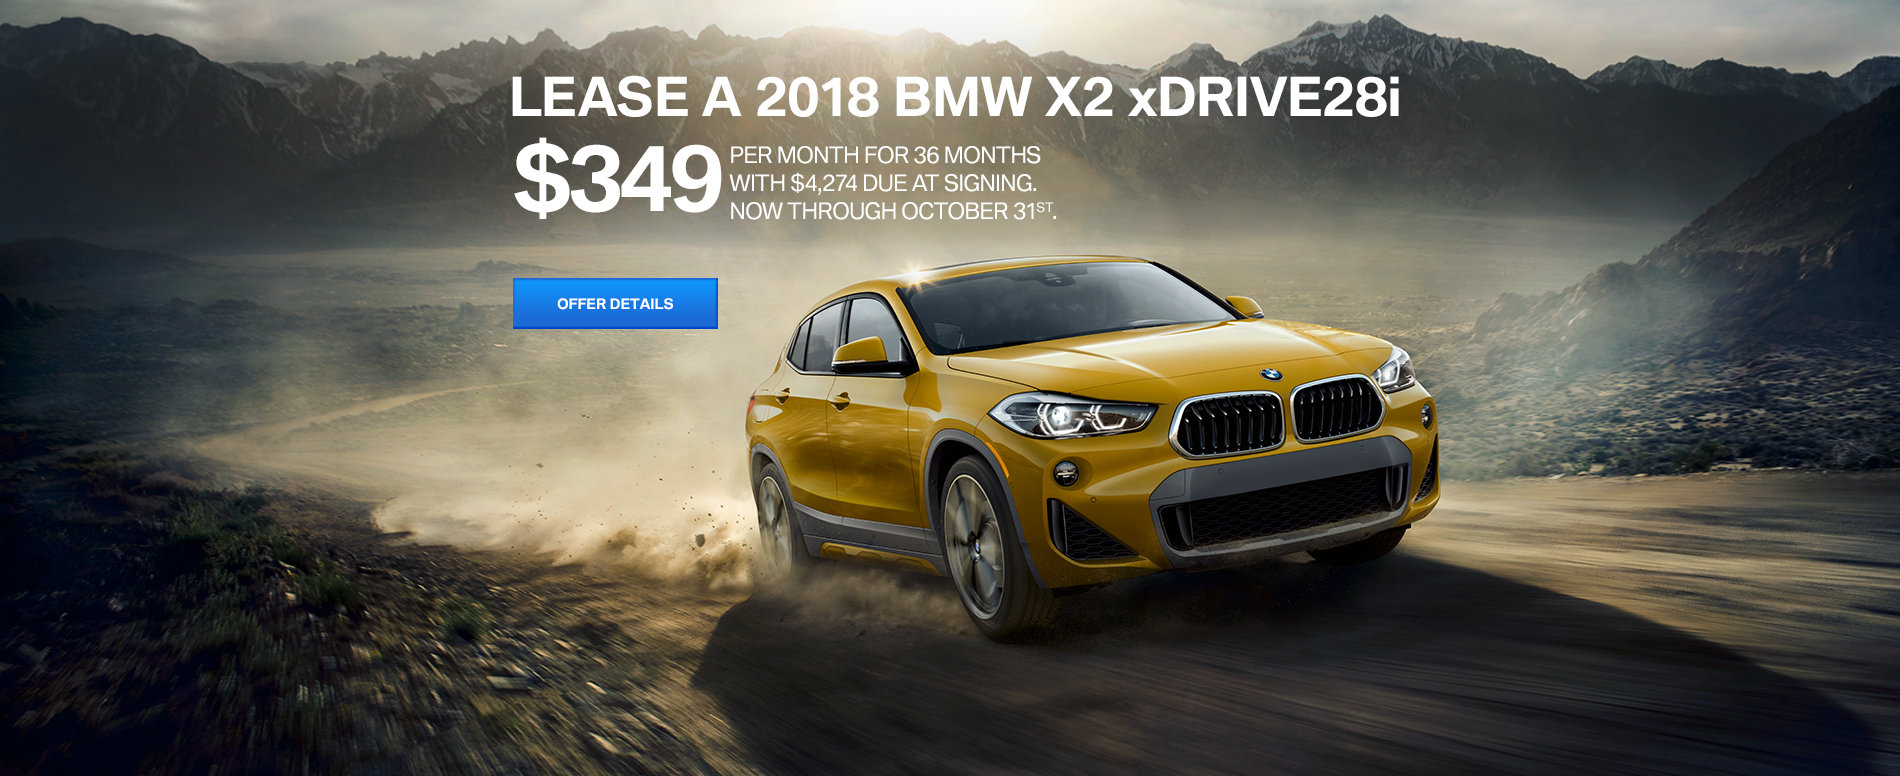 LEASE A 2018 BMW X2 xDRIVE28i FOR $349/MONTH FOR 36 MONTHS  WITH